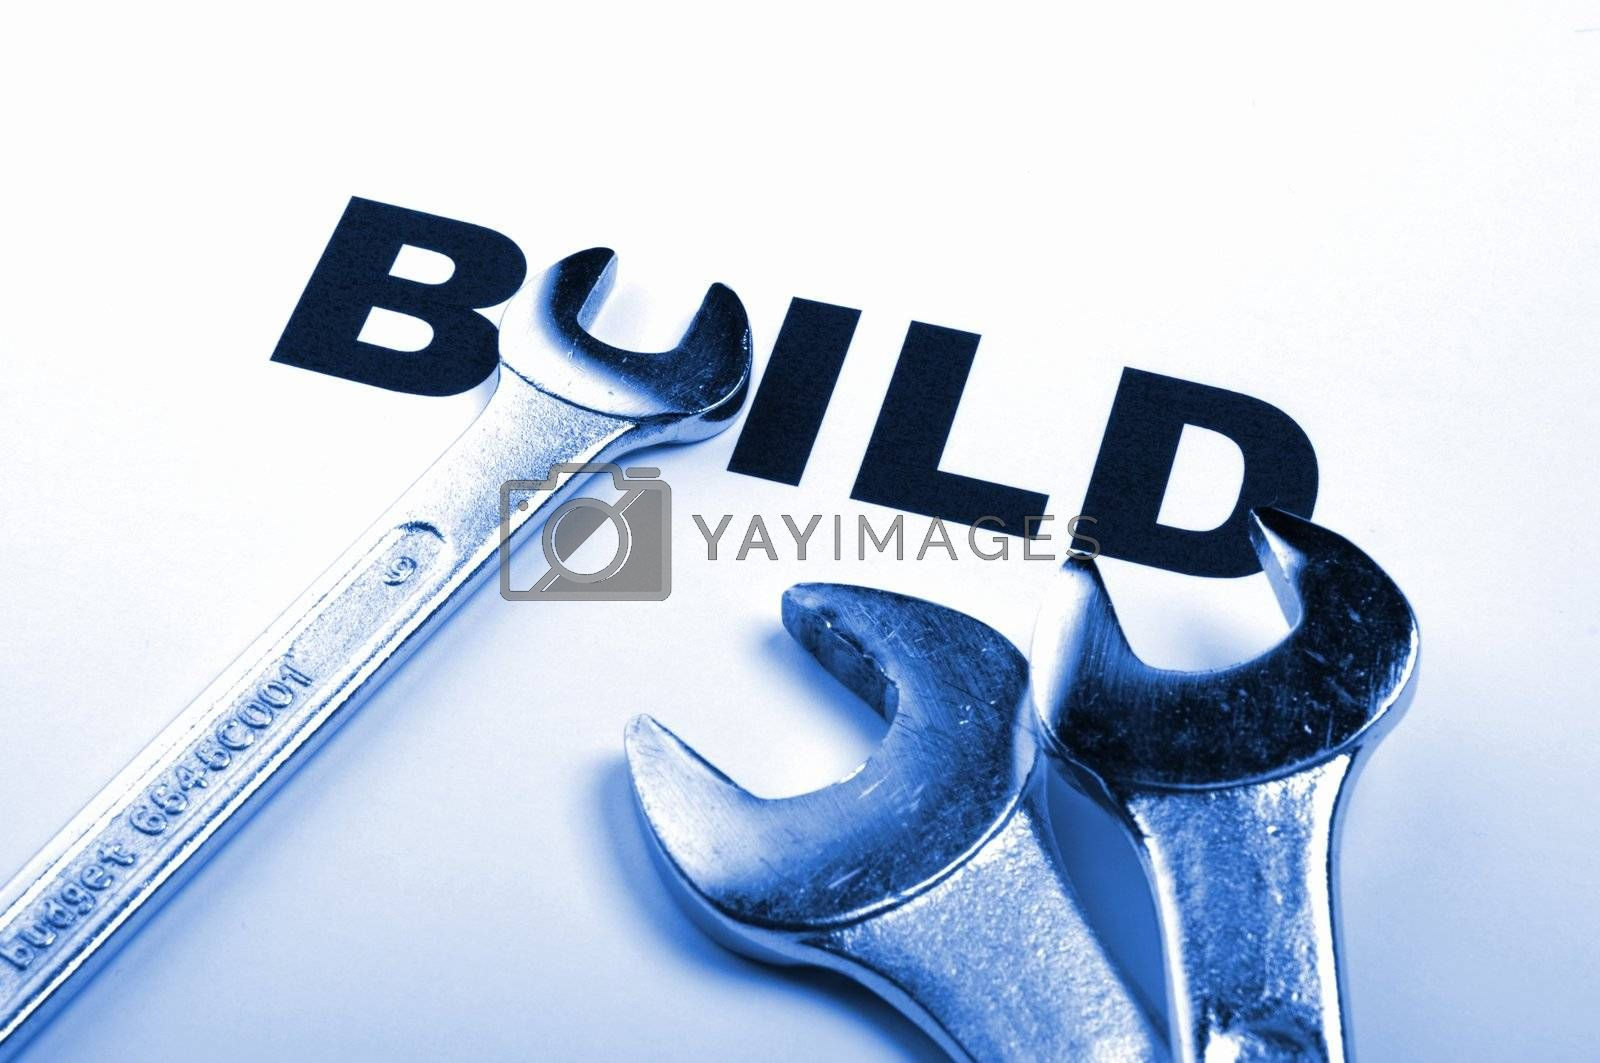 build and  tools showing construction concept with word